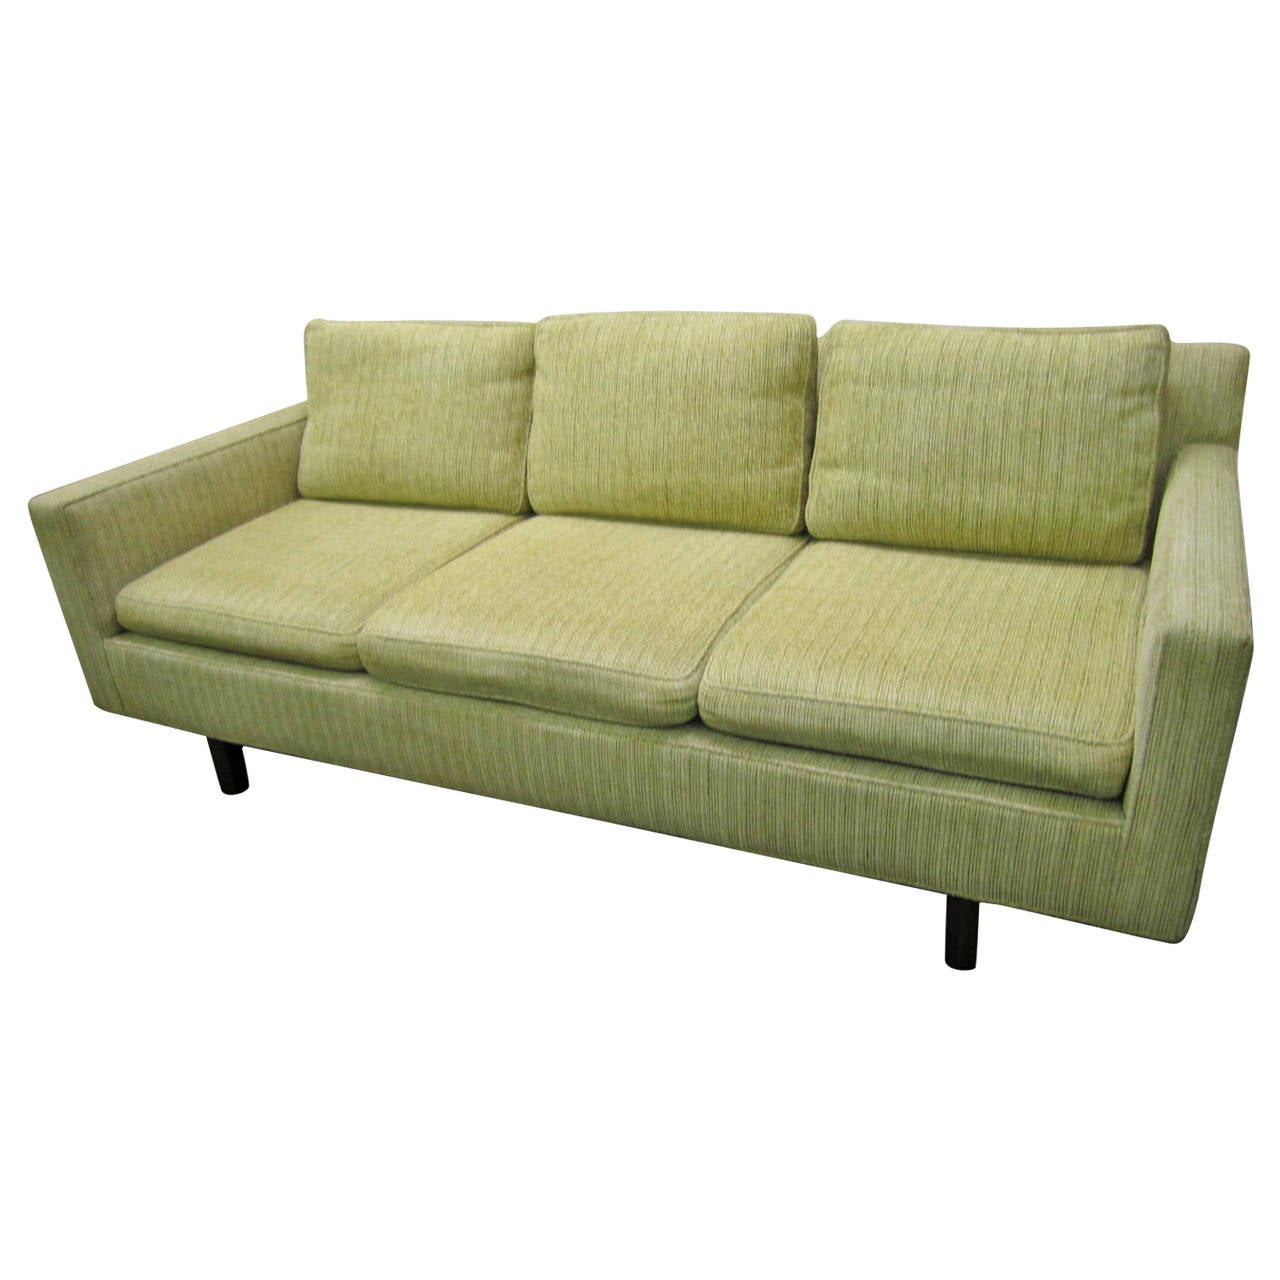 Cost to reupholster a sectional sofa hereo sofa Cost to reupholster loveseat